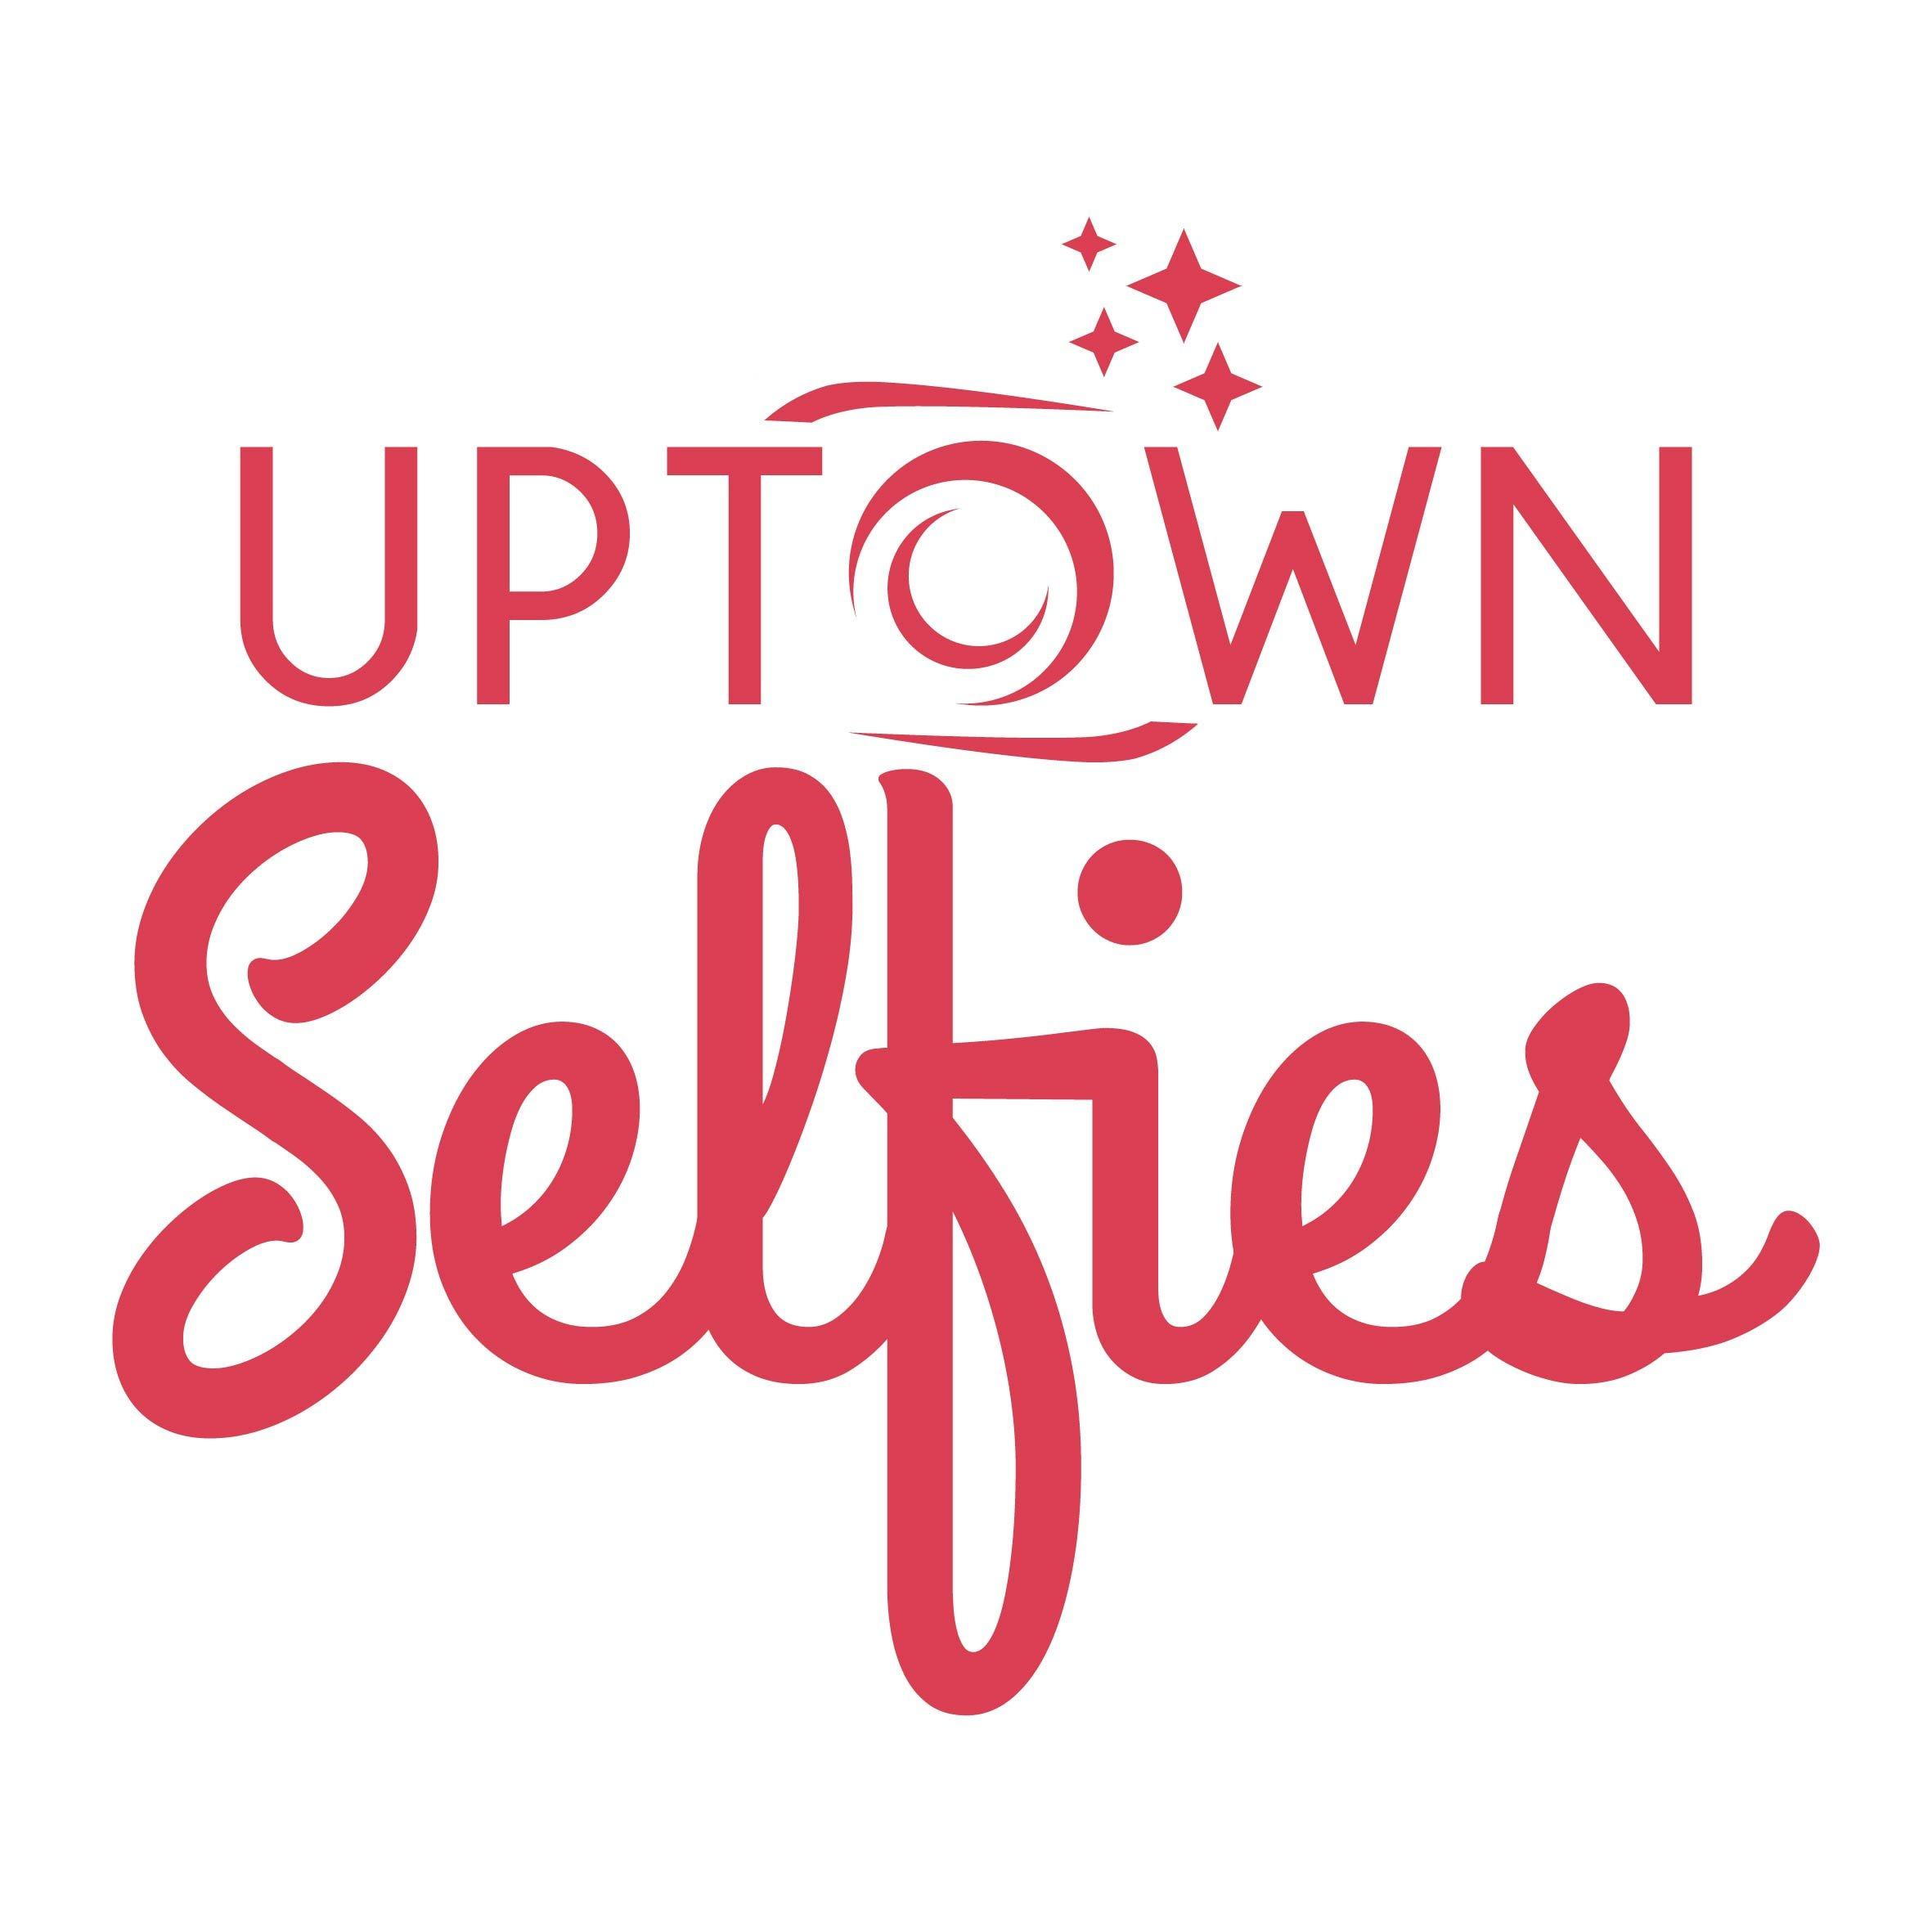 Uptown Selfies Photo Booth Rental Services - Orlando, FL 32837 - (407)986-1245   ShowMeLocal.com